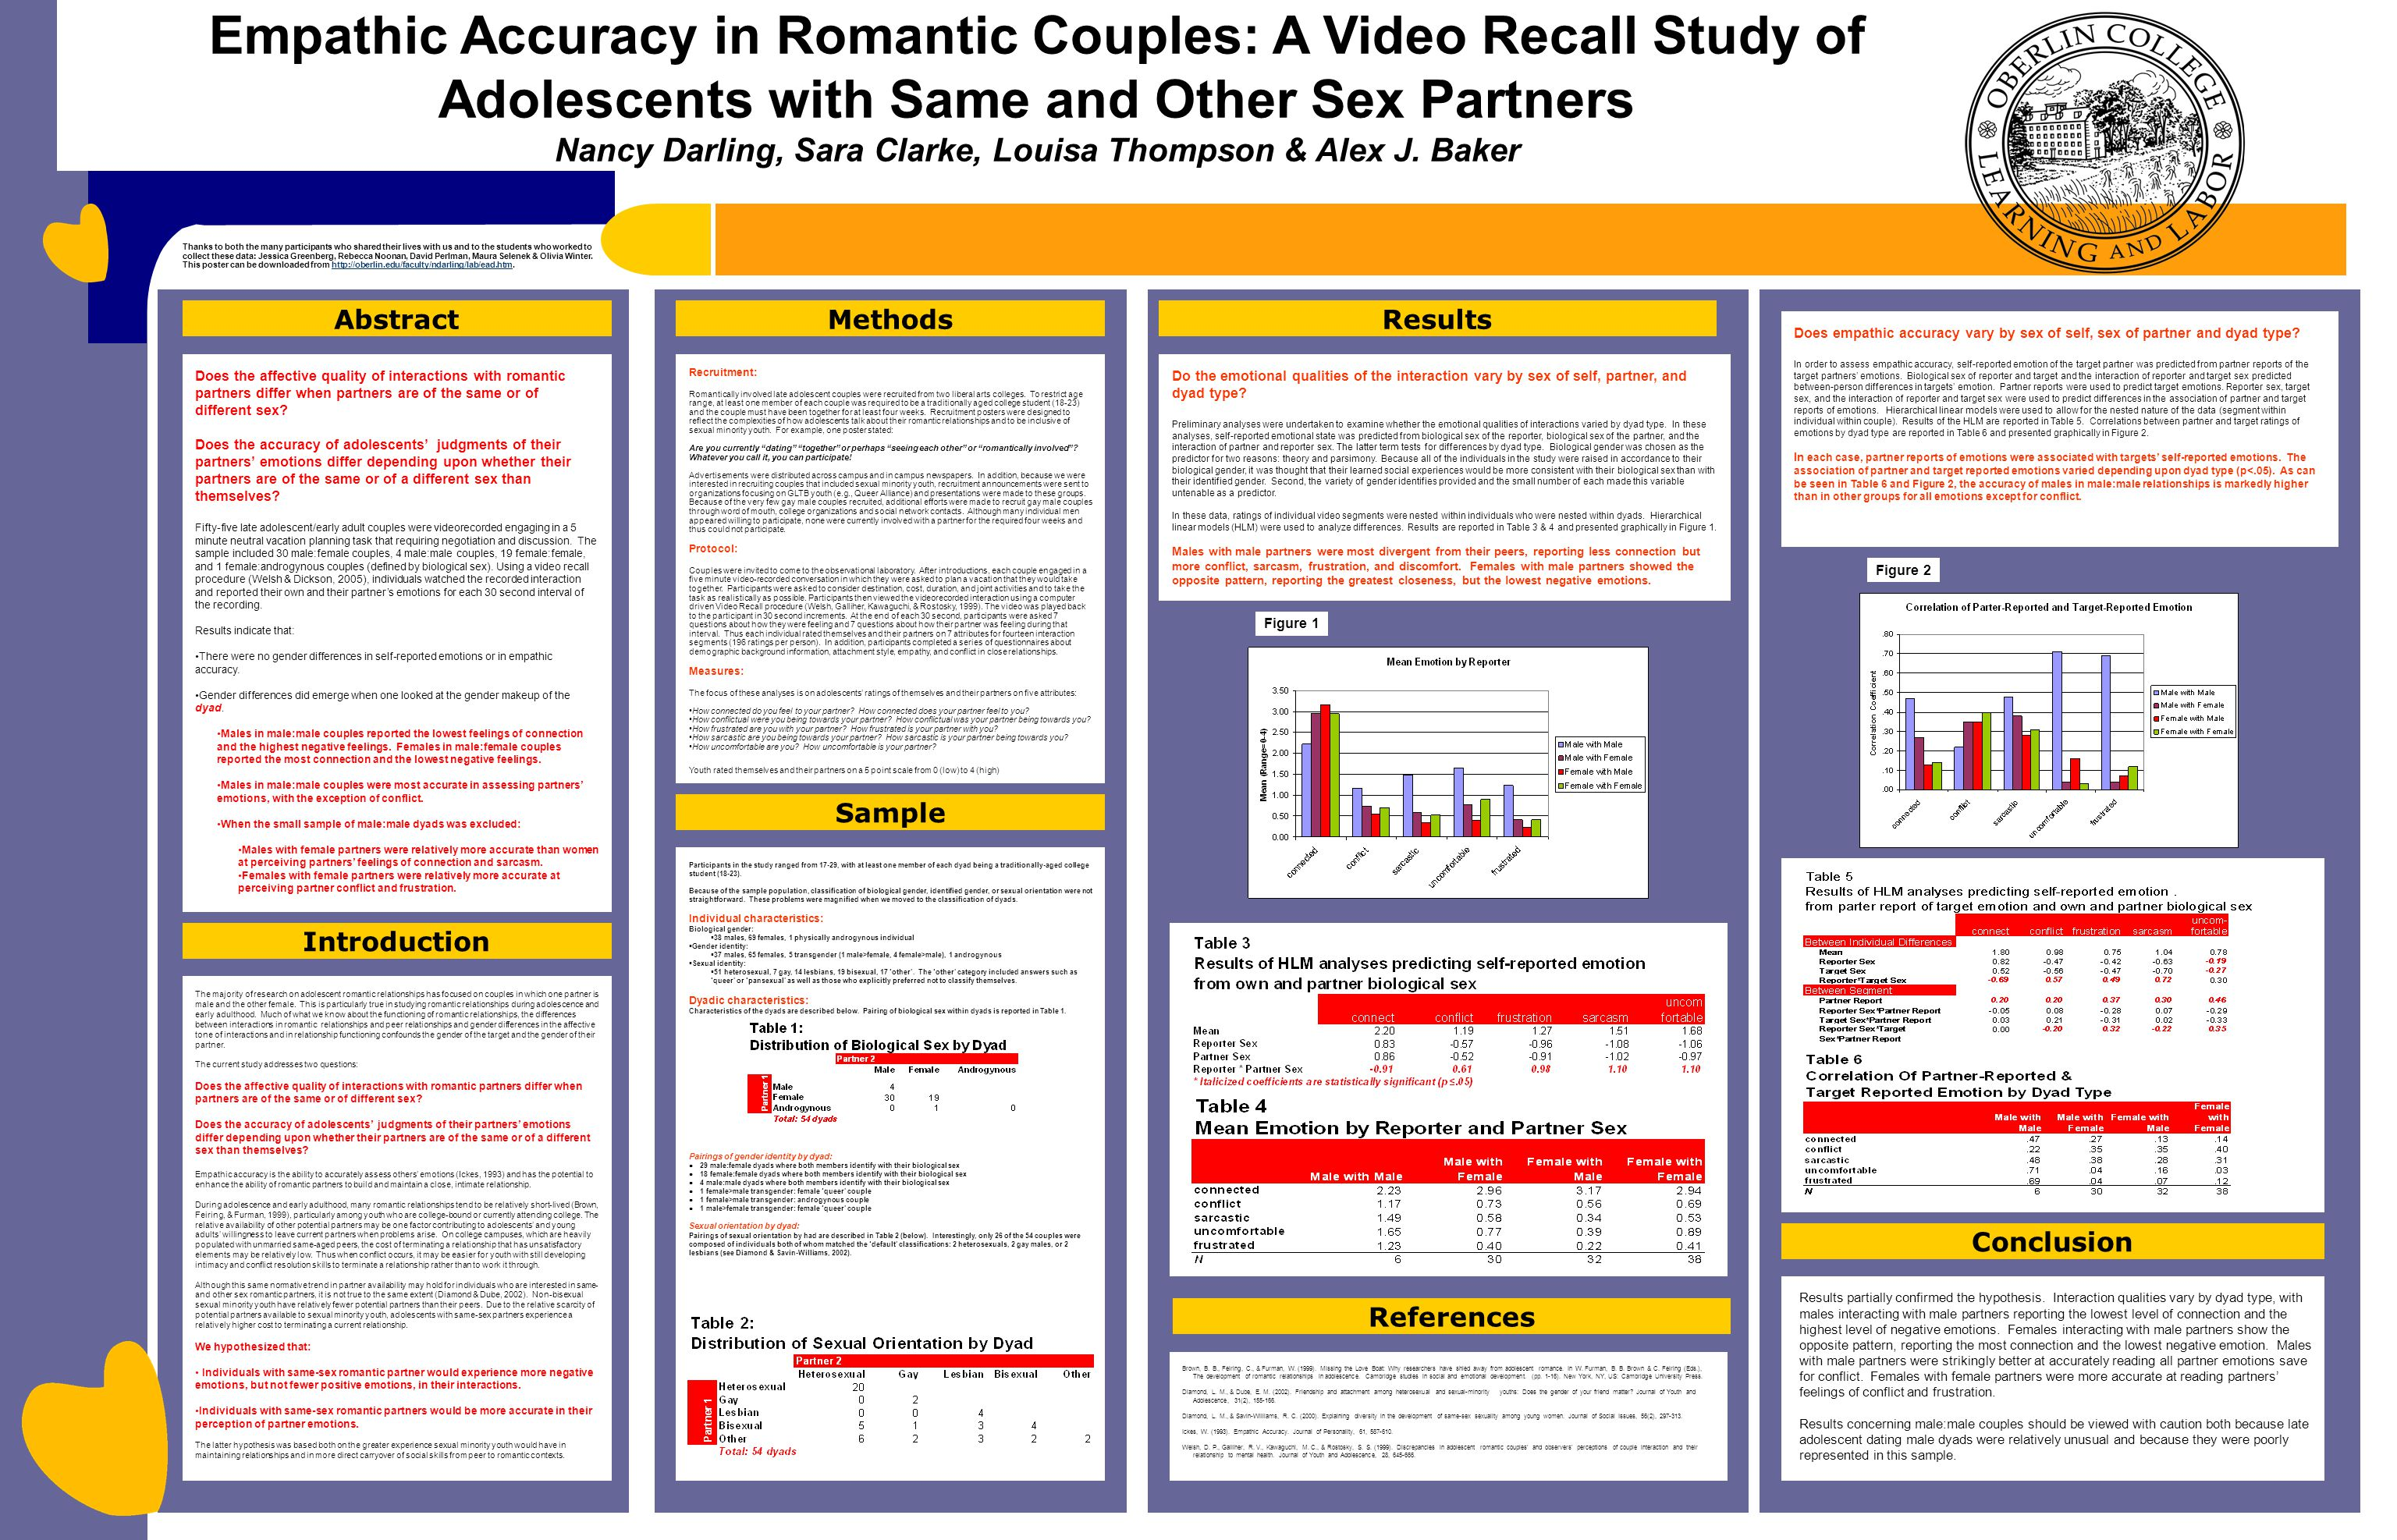 Empathic Accuracy in Romantic Couples: A Video Recall Study of Adolescents with Same and Other Sex Partners Nancy Darling, Sara Clarke, Louisa Thompson & Alex J. Baker